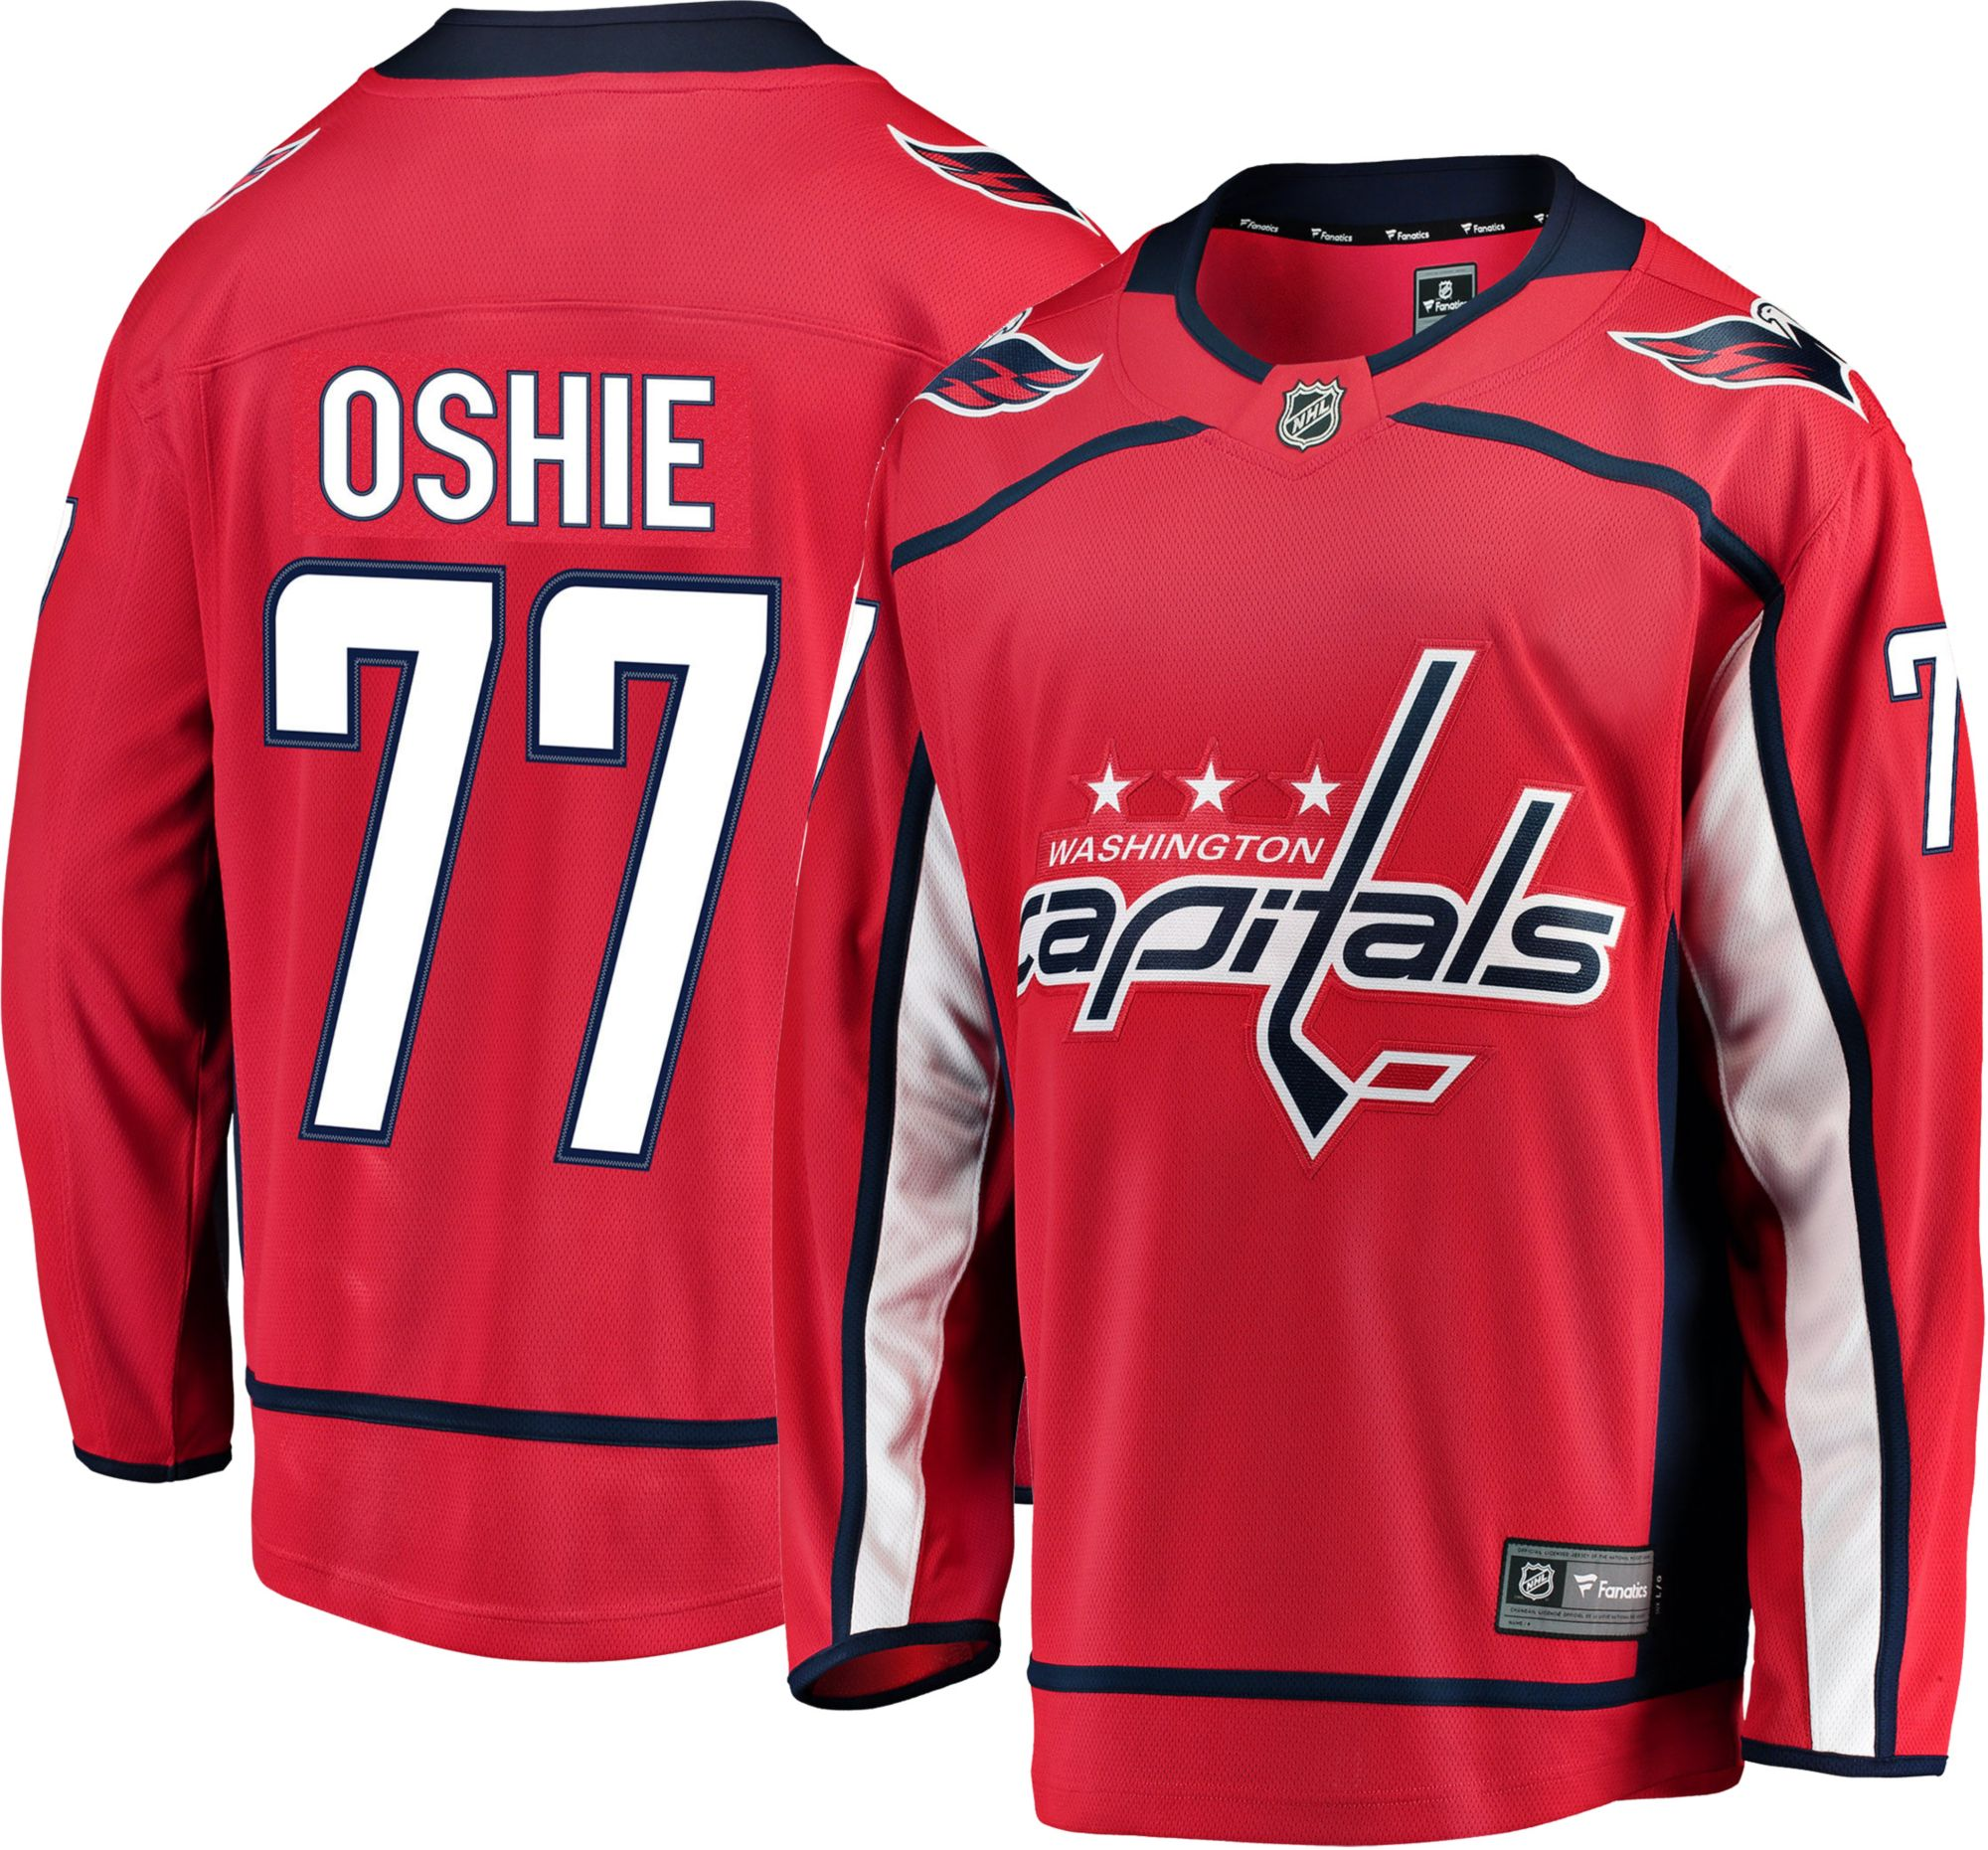 oshie capitals jersey